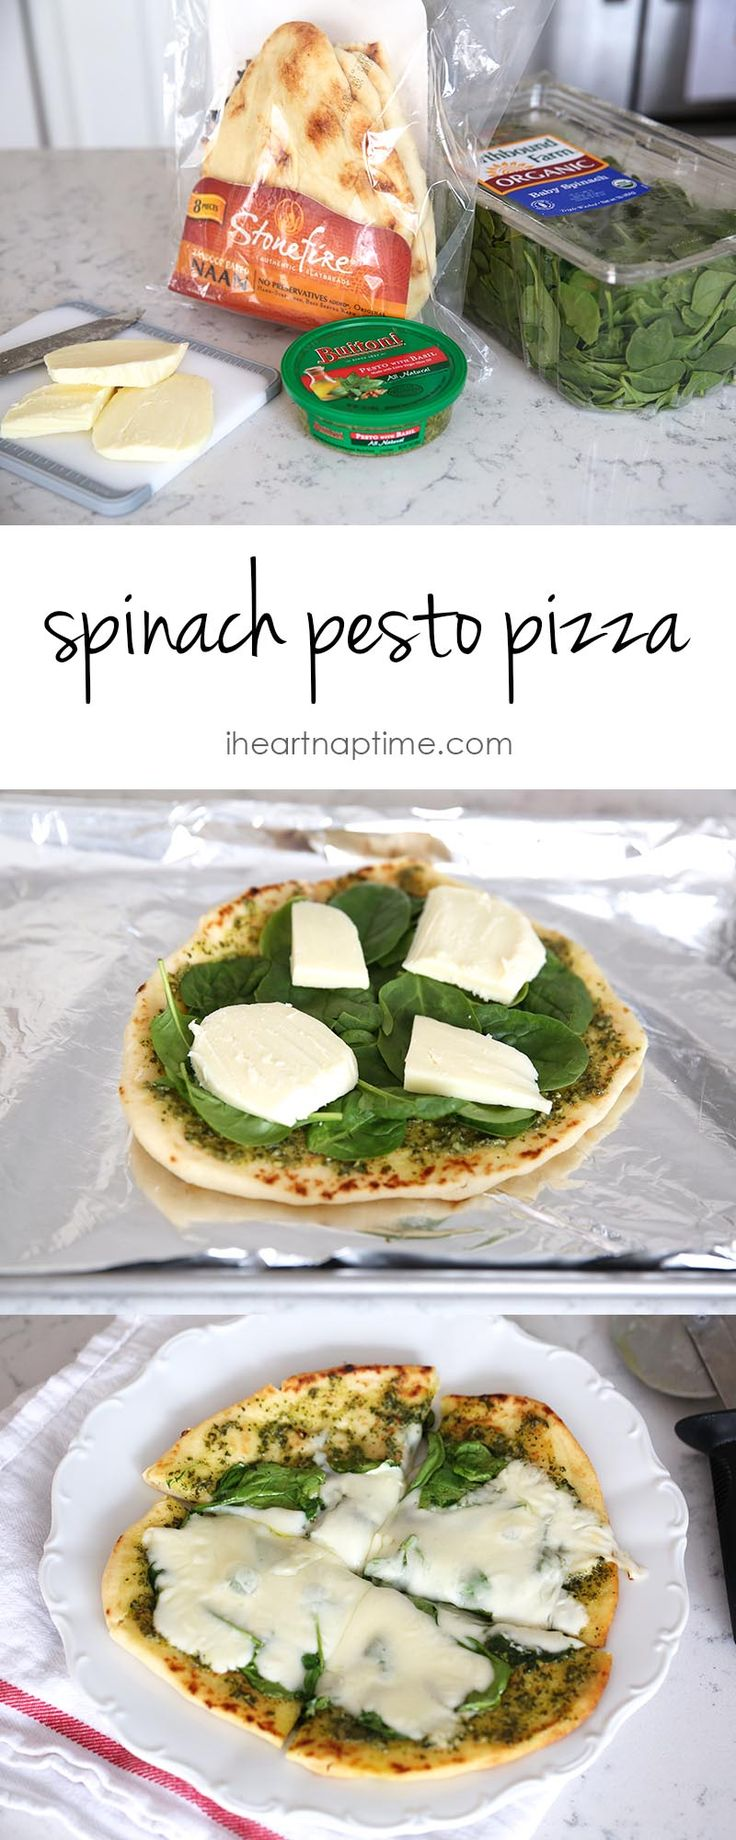 Spinach pesto pizza recipe... Yummmmm!